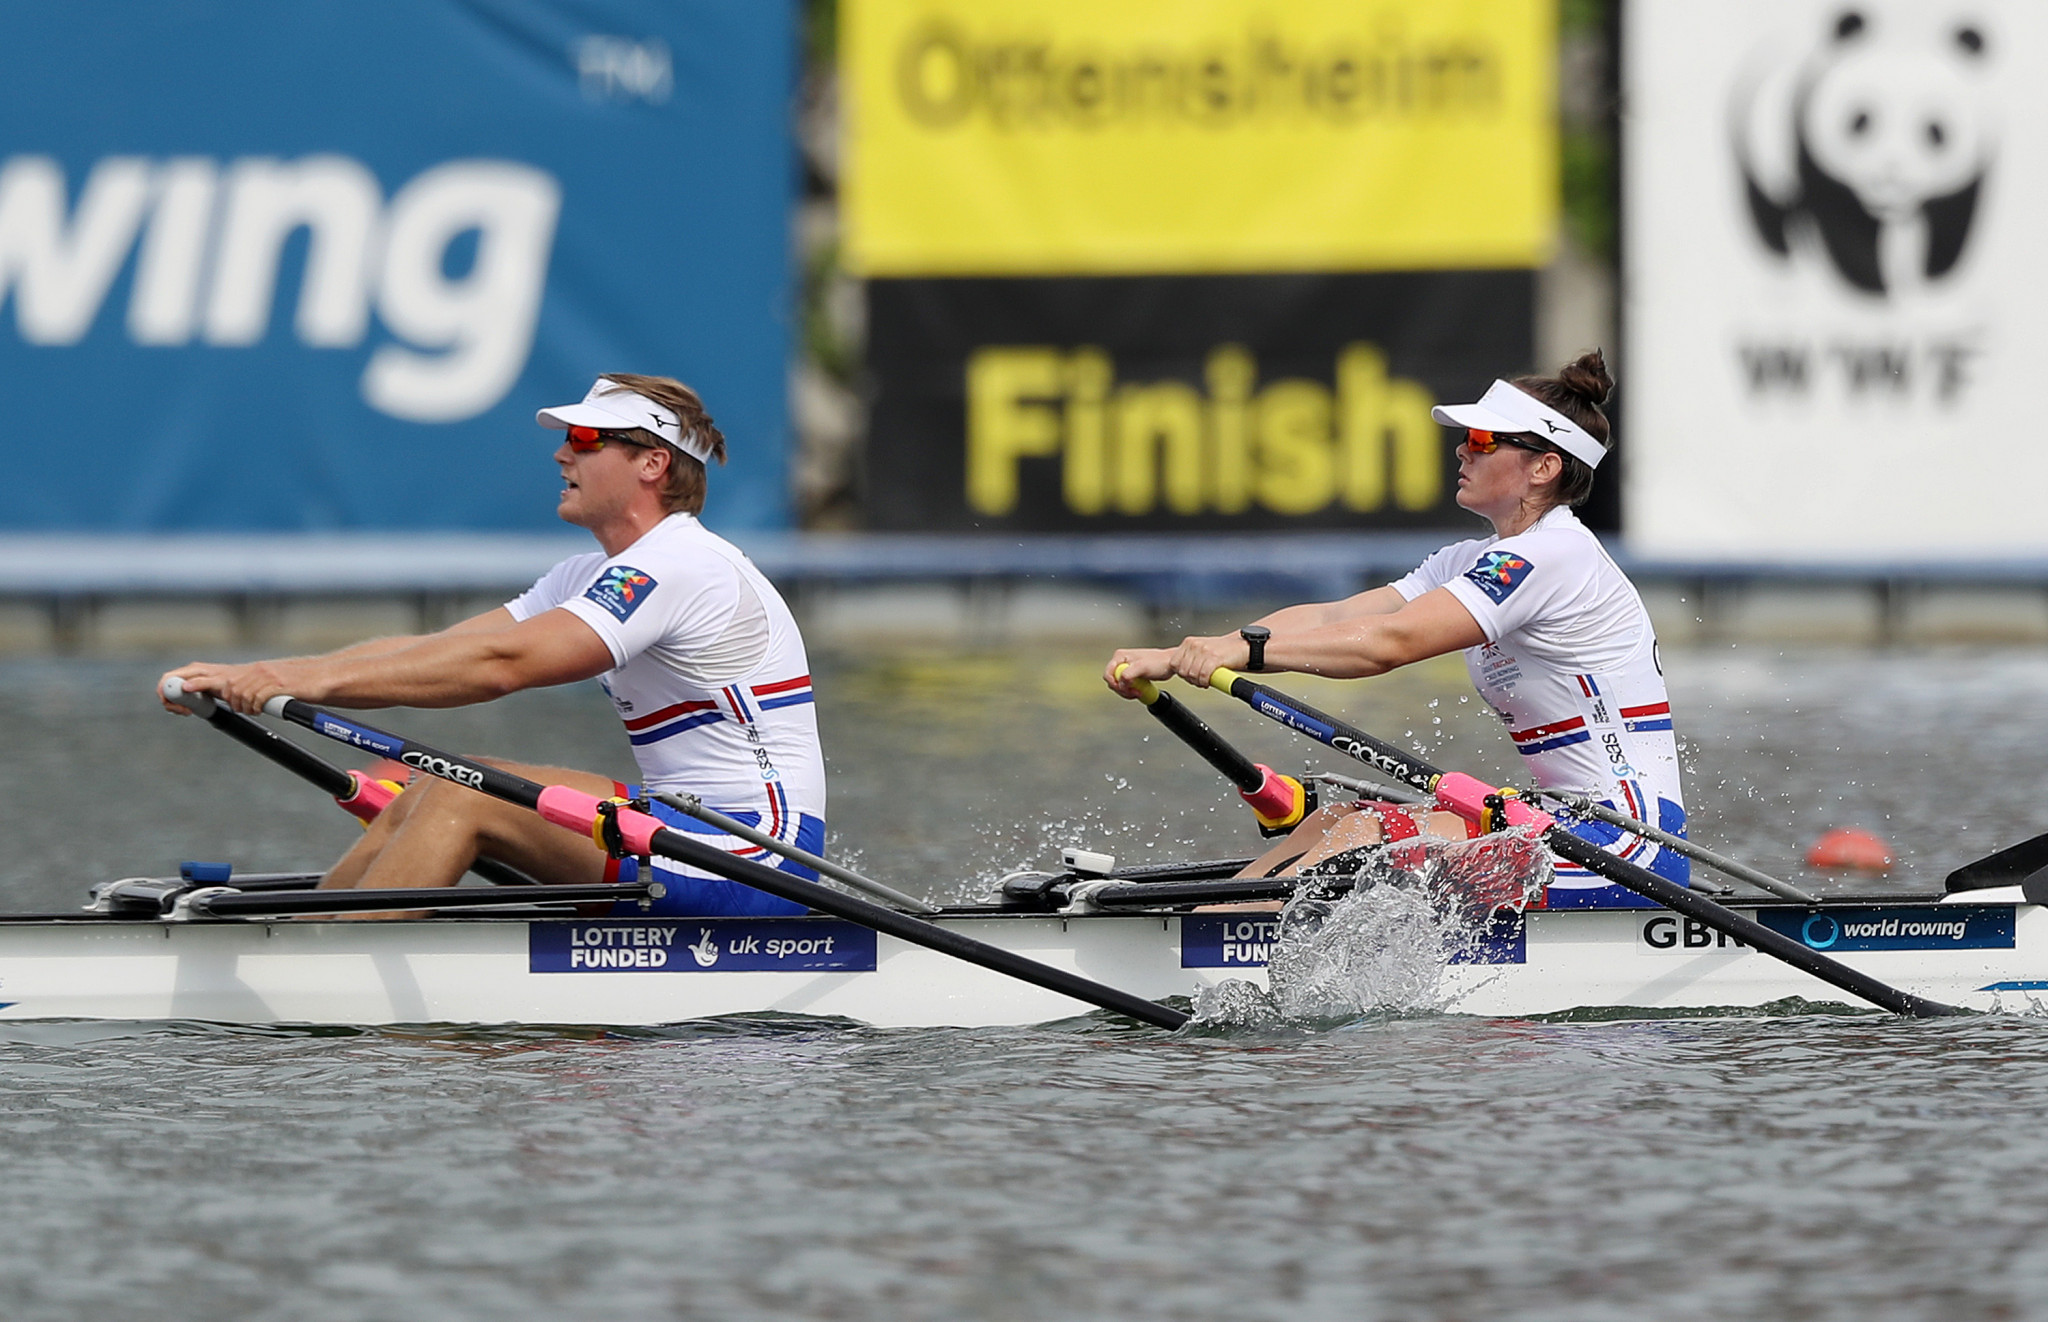 Britain secure two Para gold medals at World Rowing Championships